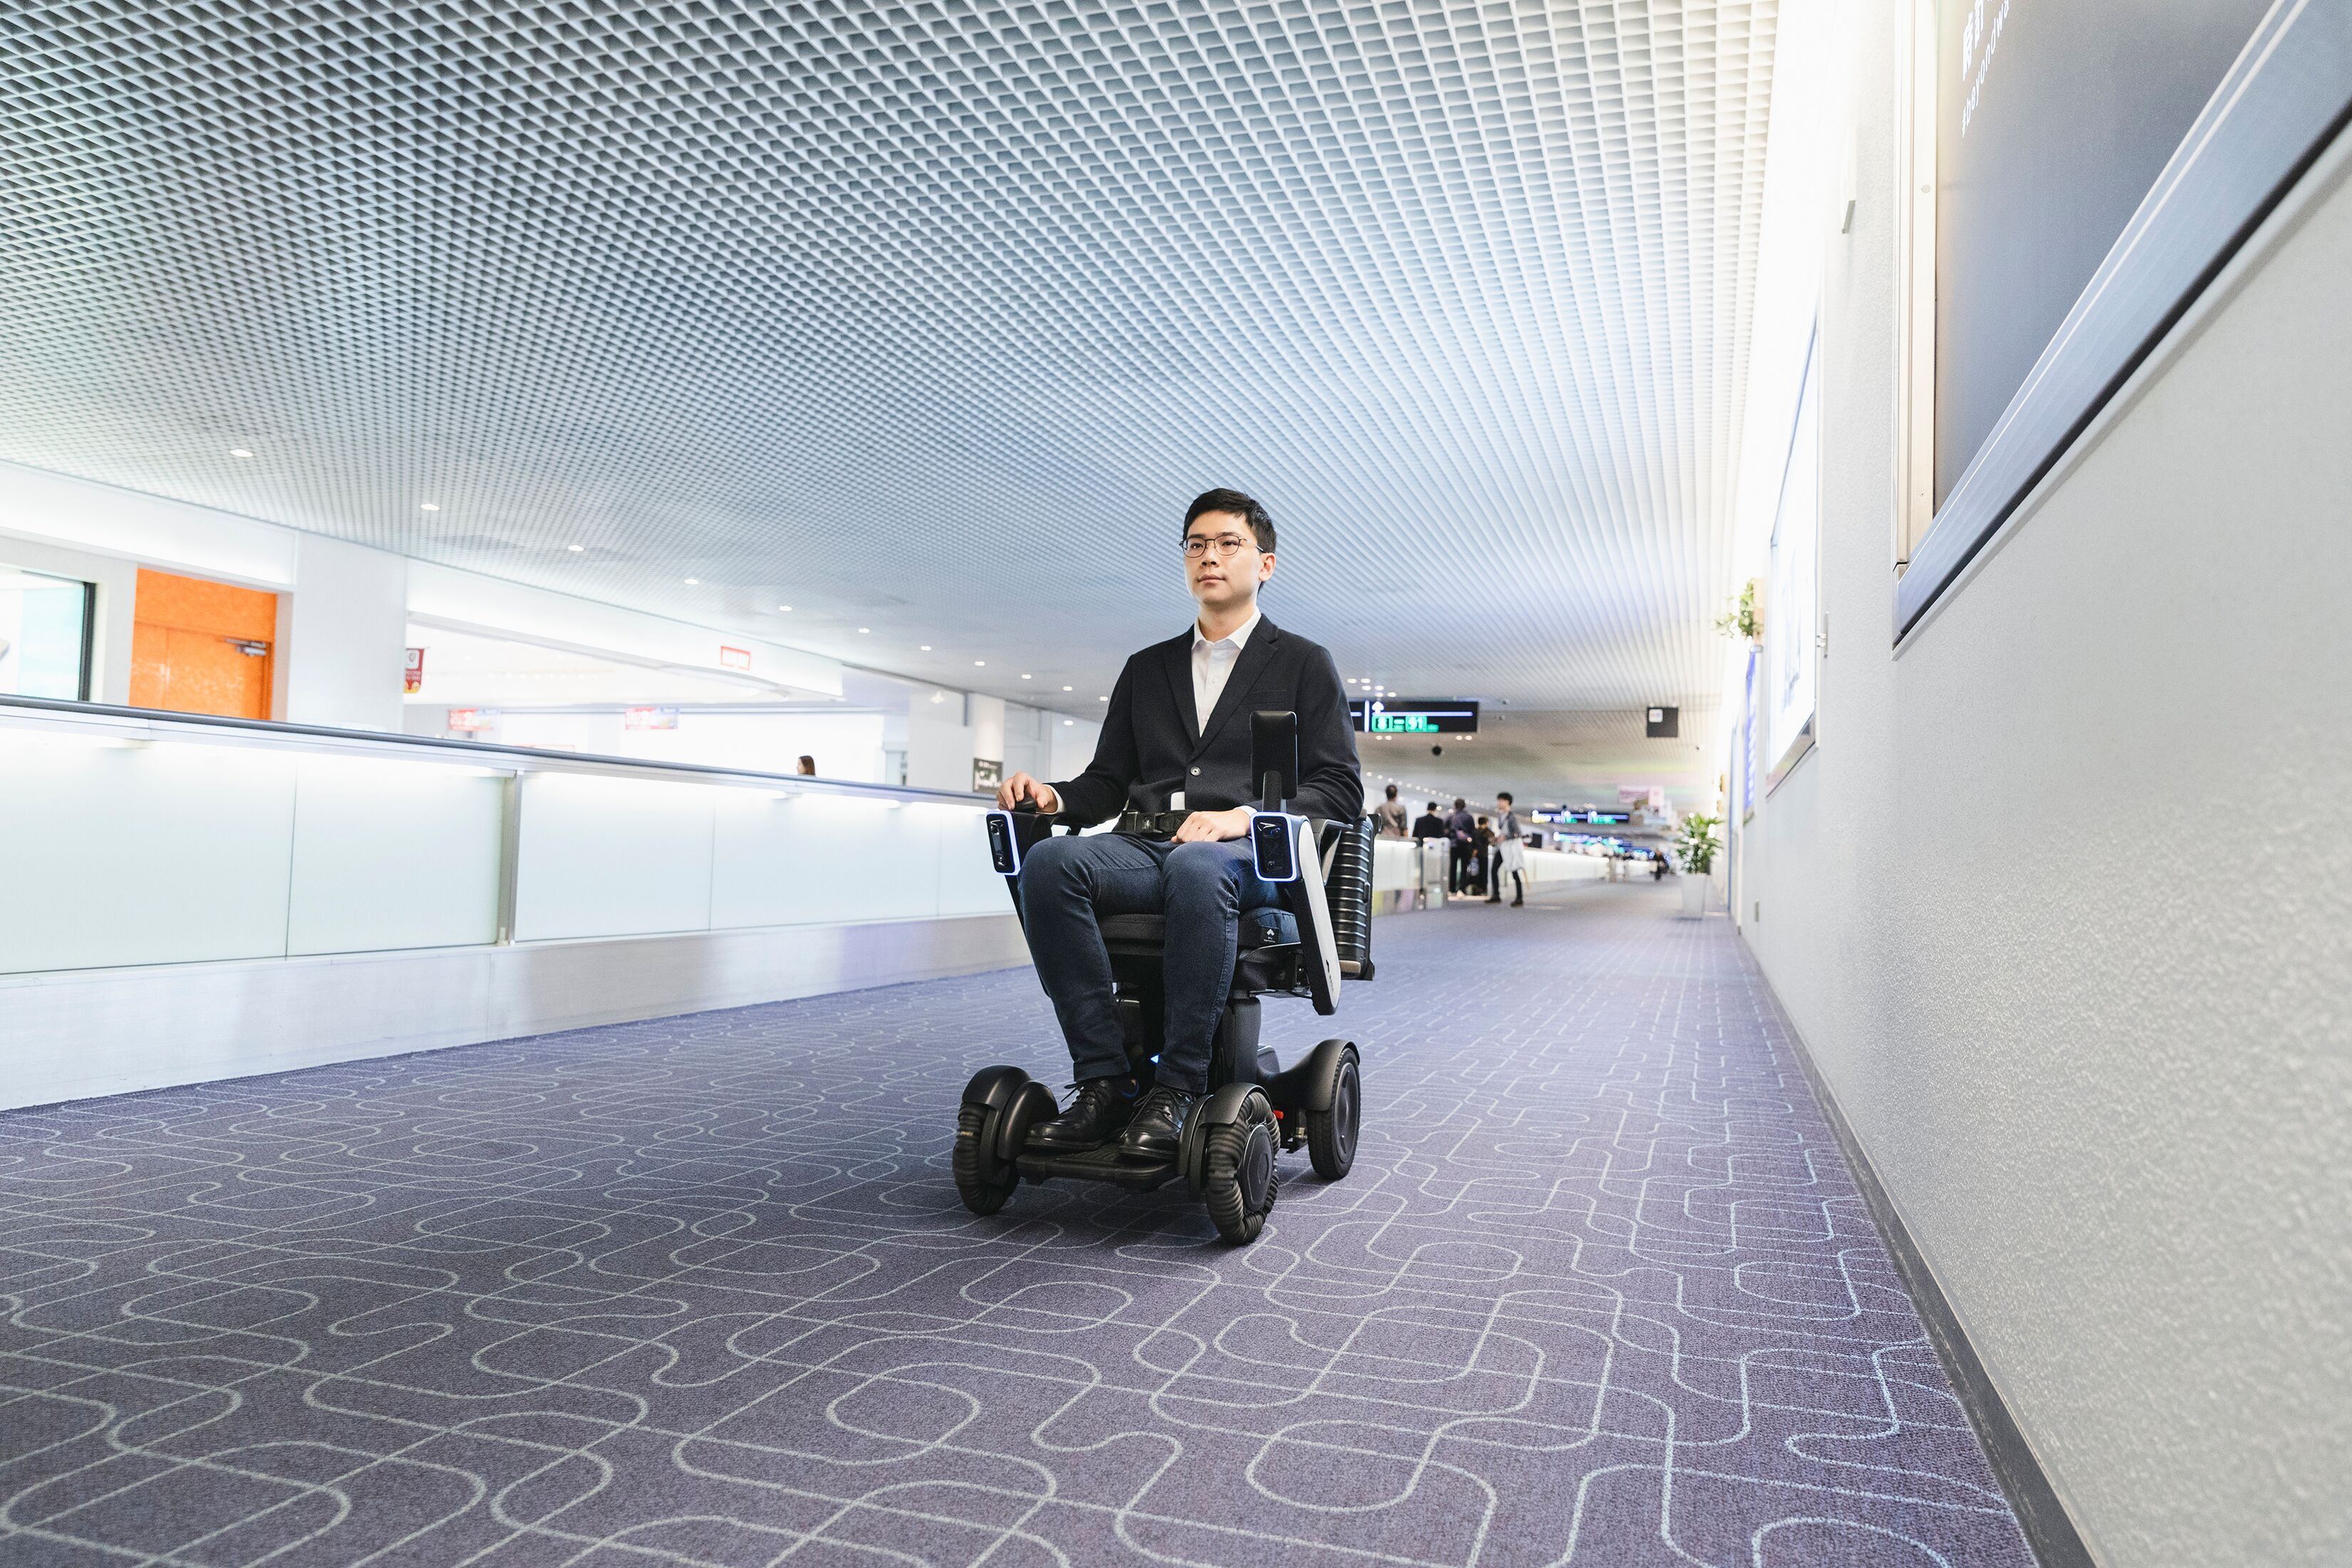 gvMxmdJw - WHILL Announces Autonomous Wheelchair Trials a Success